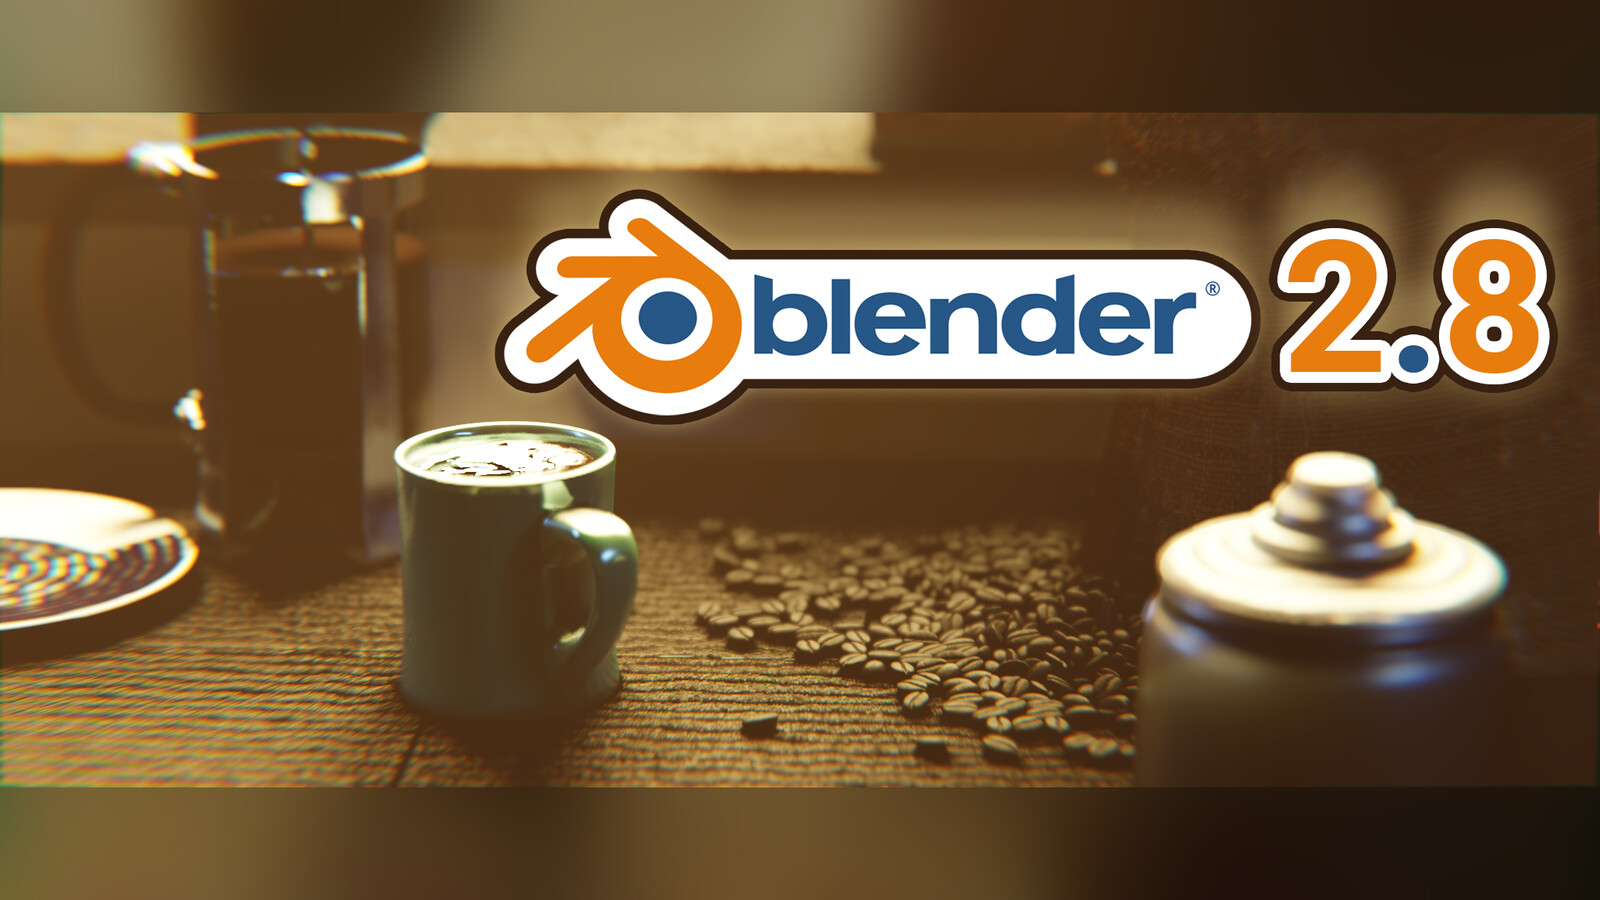 """Coffee"" - Blender 2.8 Eevee"